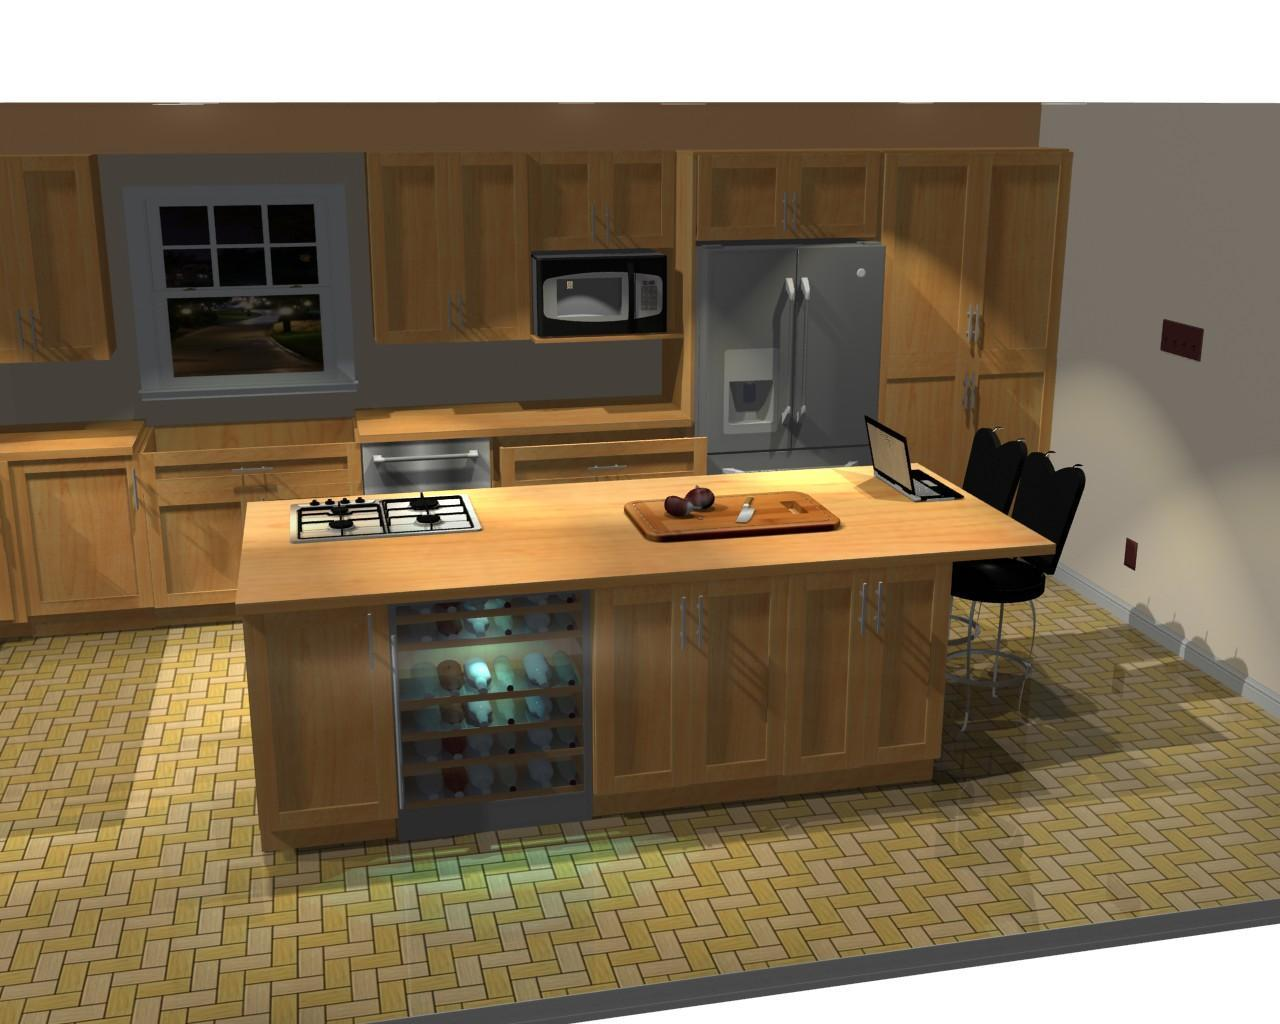 Pro kitchen design software 28 images cabinet design Professional interior design software reviews